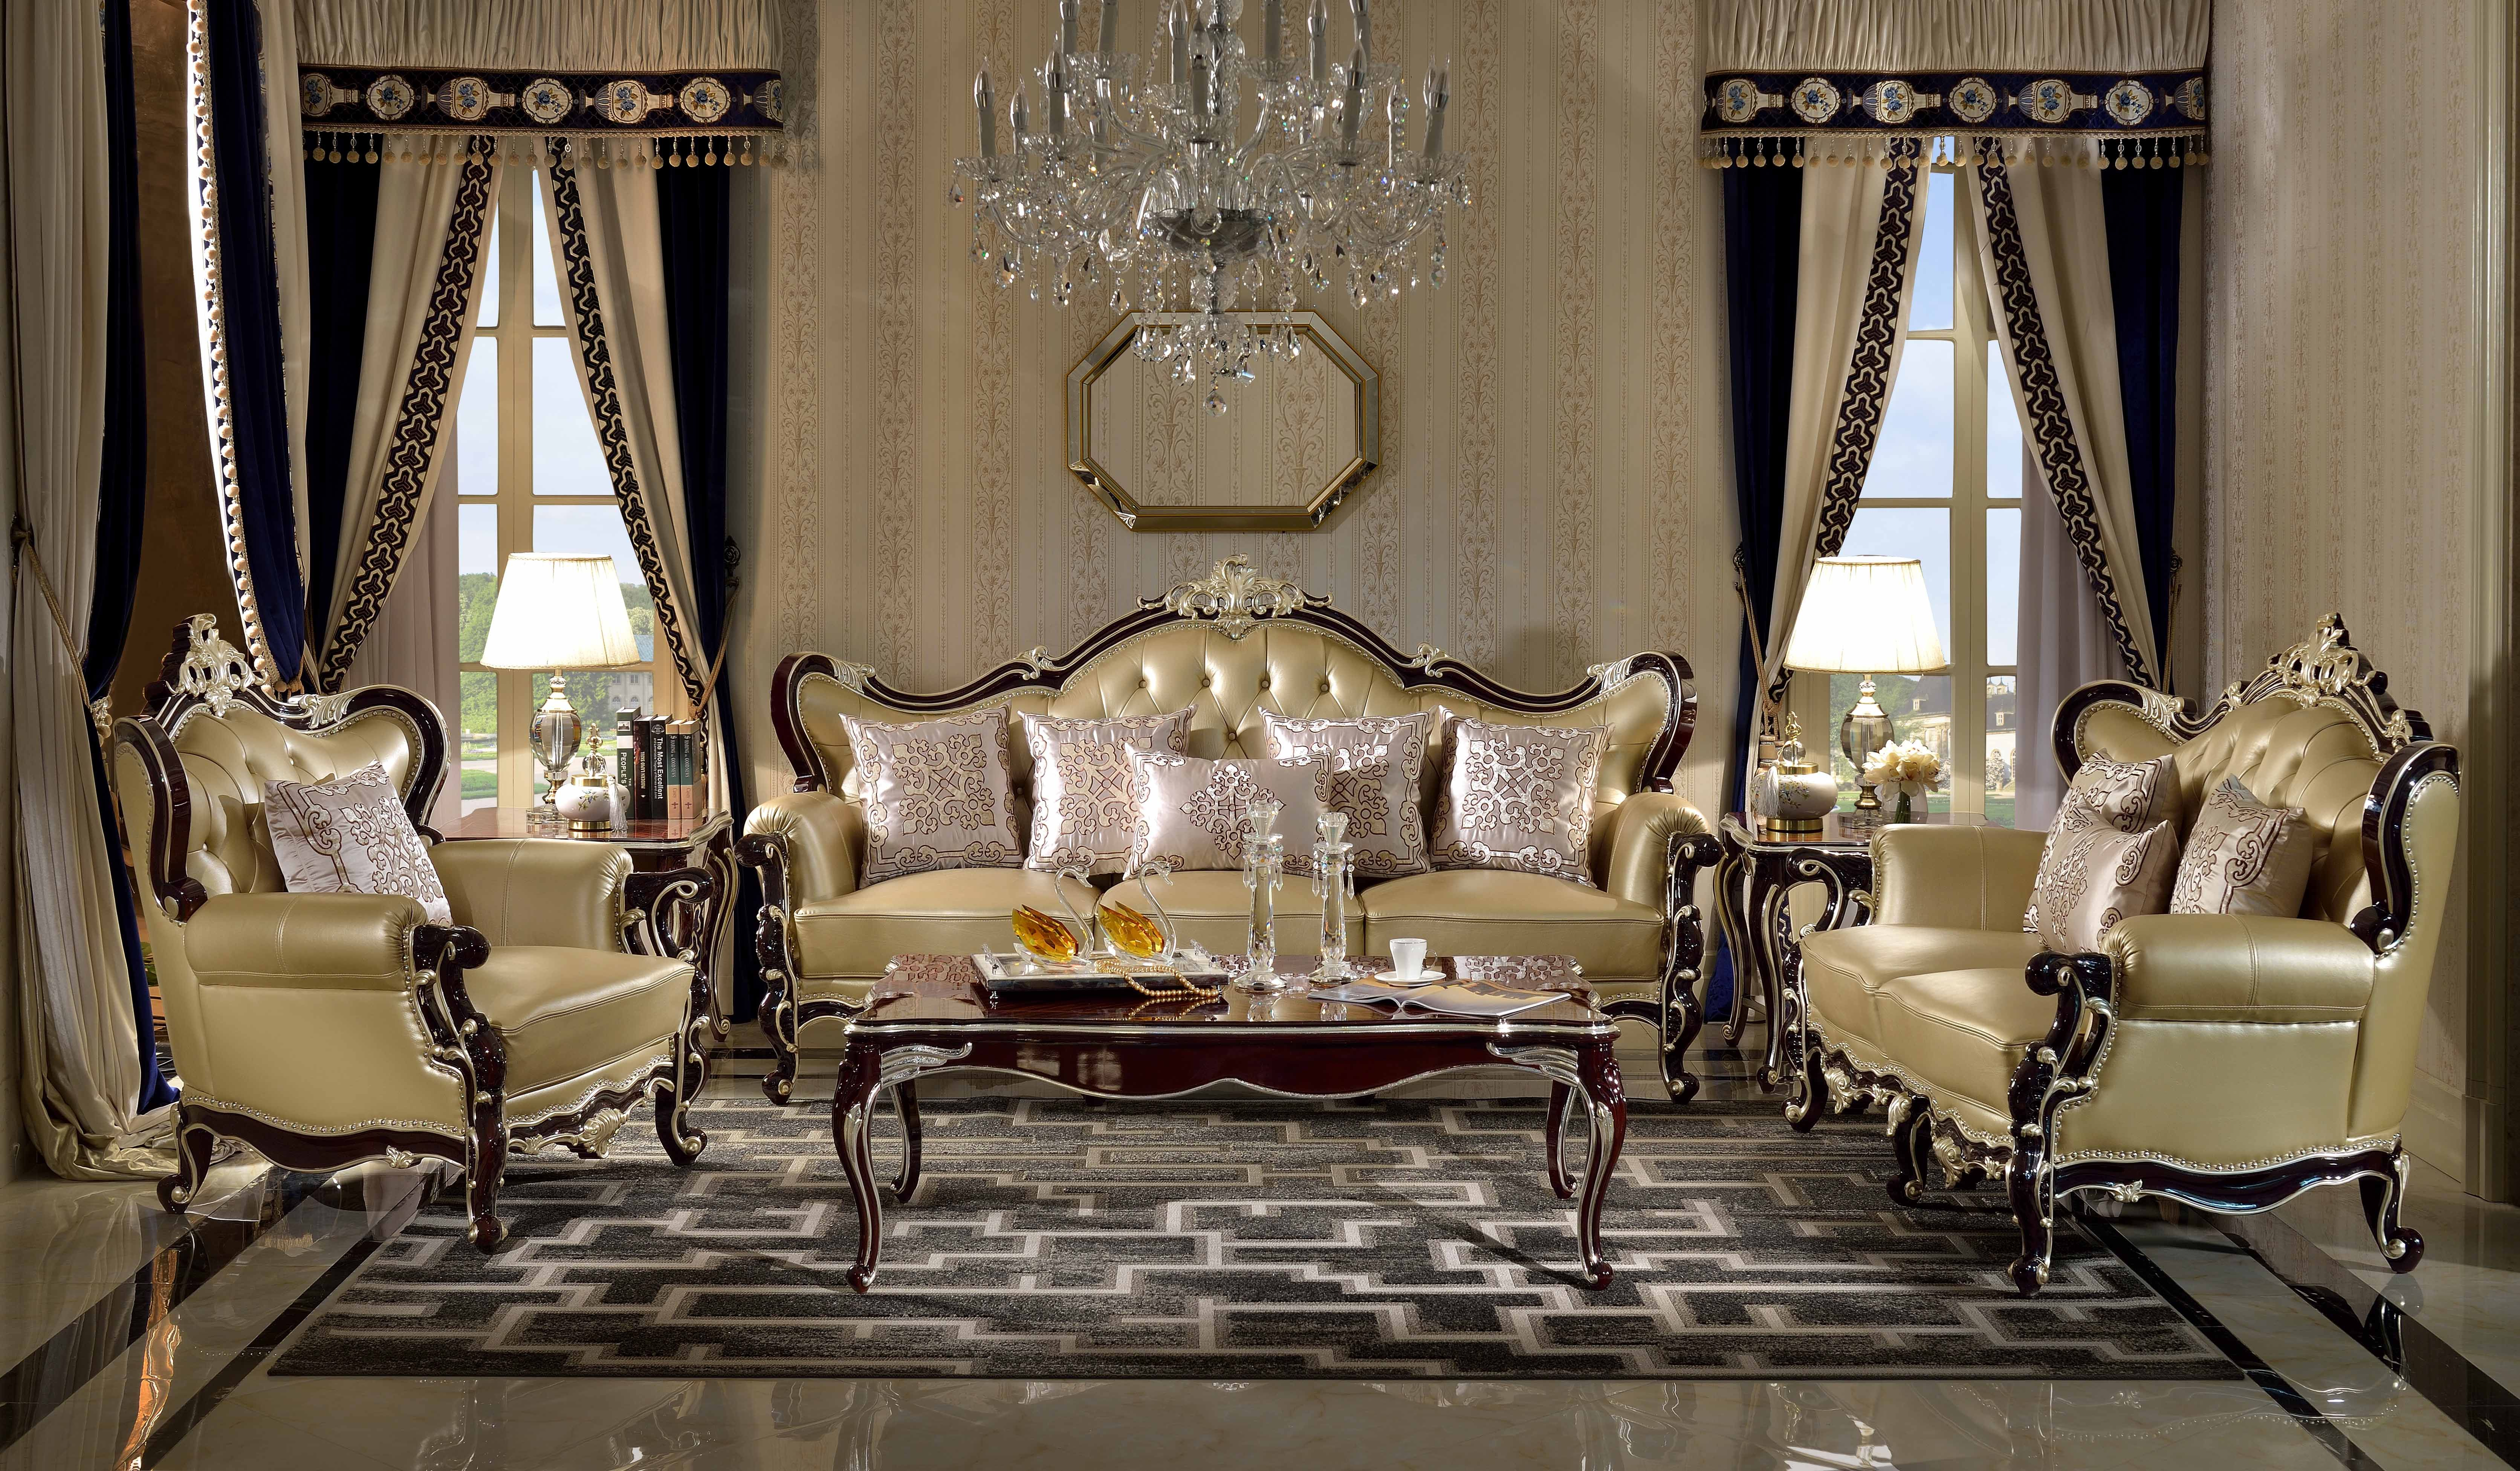 Ma Xiaoying Leather Sofas Antique Furnituresolid Wood Frame Glamorous Traditional Living Room Furniture Inspiration Design